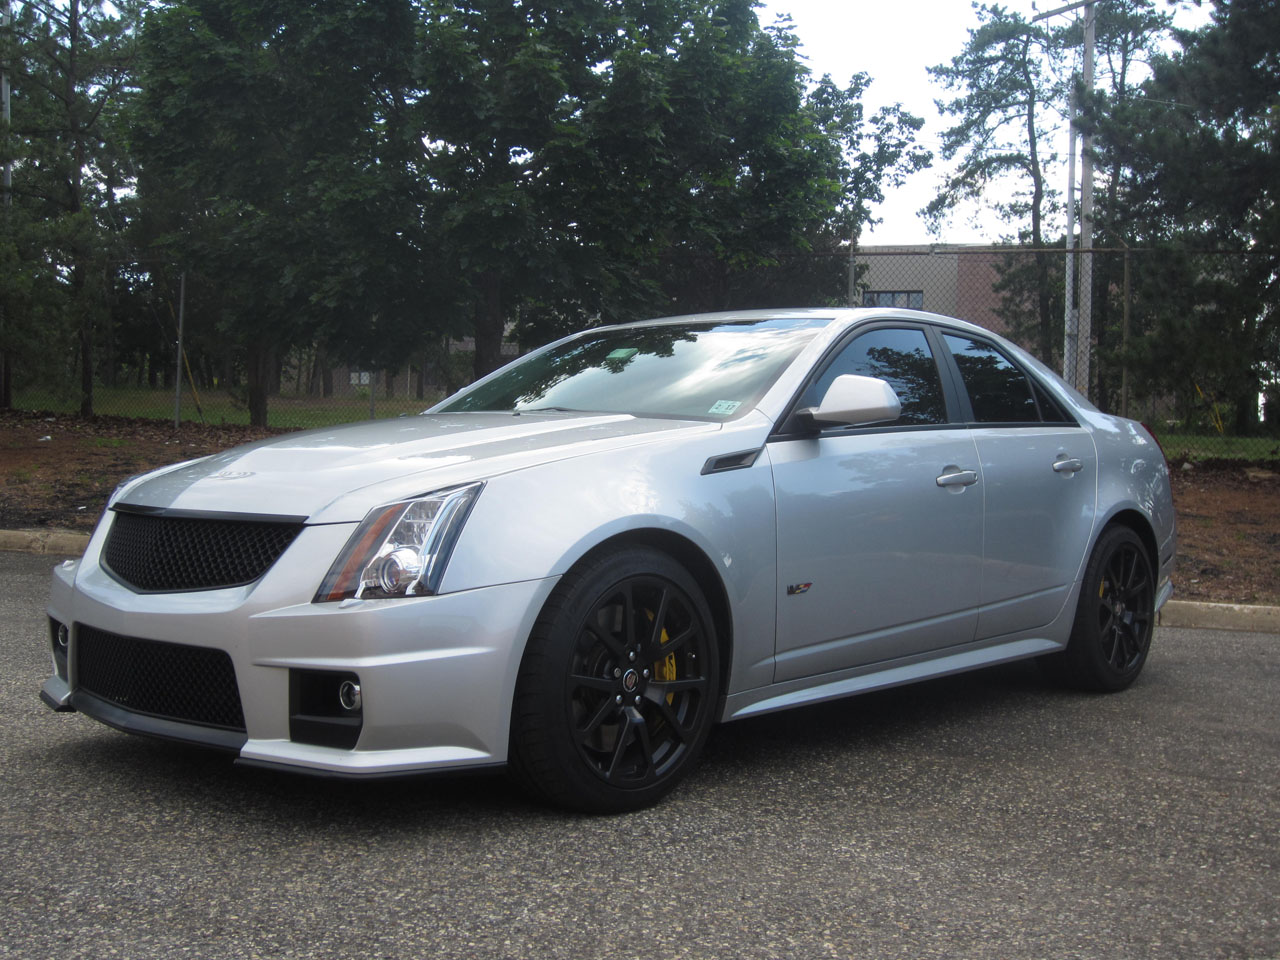 2012 Silver Cadillac Cts V Pictures Mods Upgrades